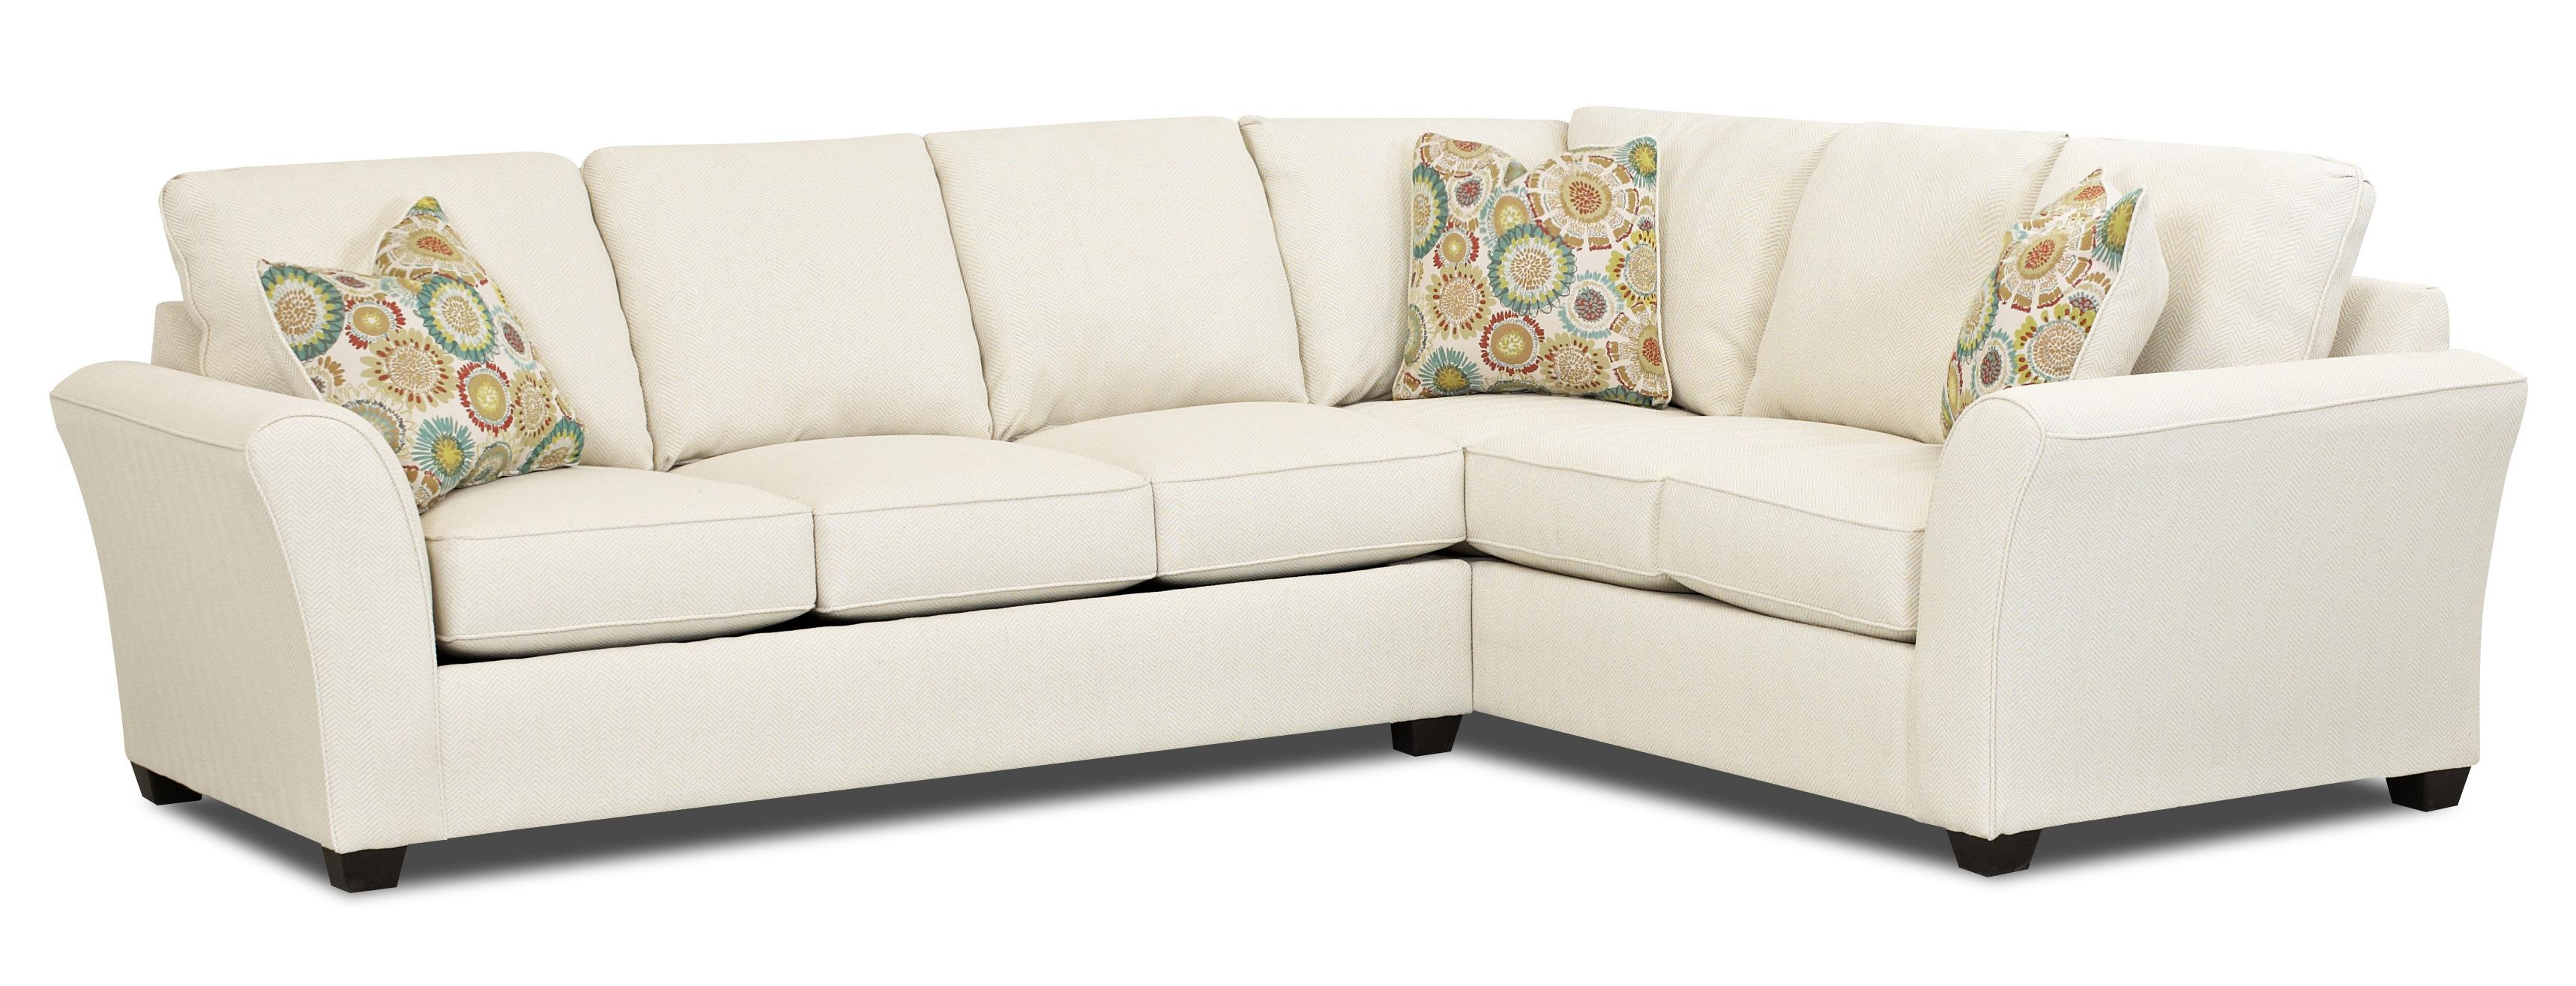 Transitional 2 piece sectional sofa by klaussner wolf for Two piece sectional sofa bed